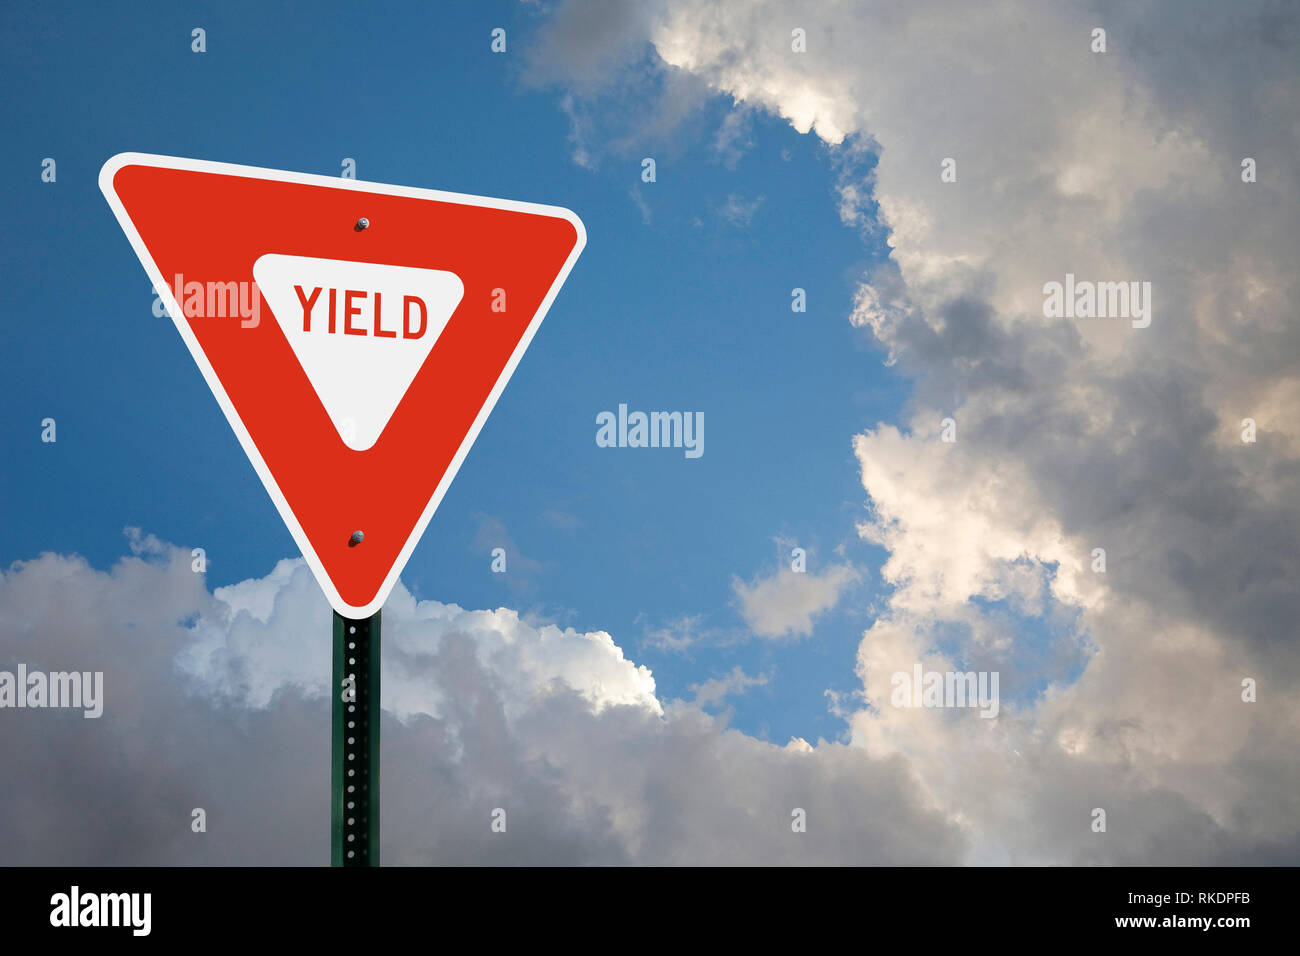 Yield Sign With Clouds - Stock Image